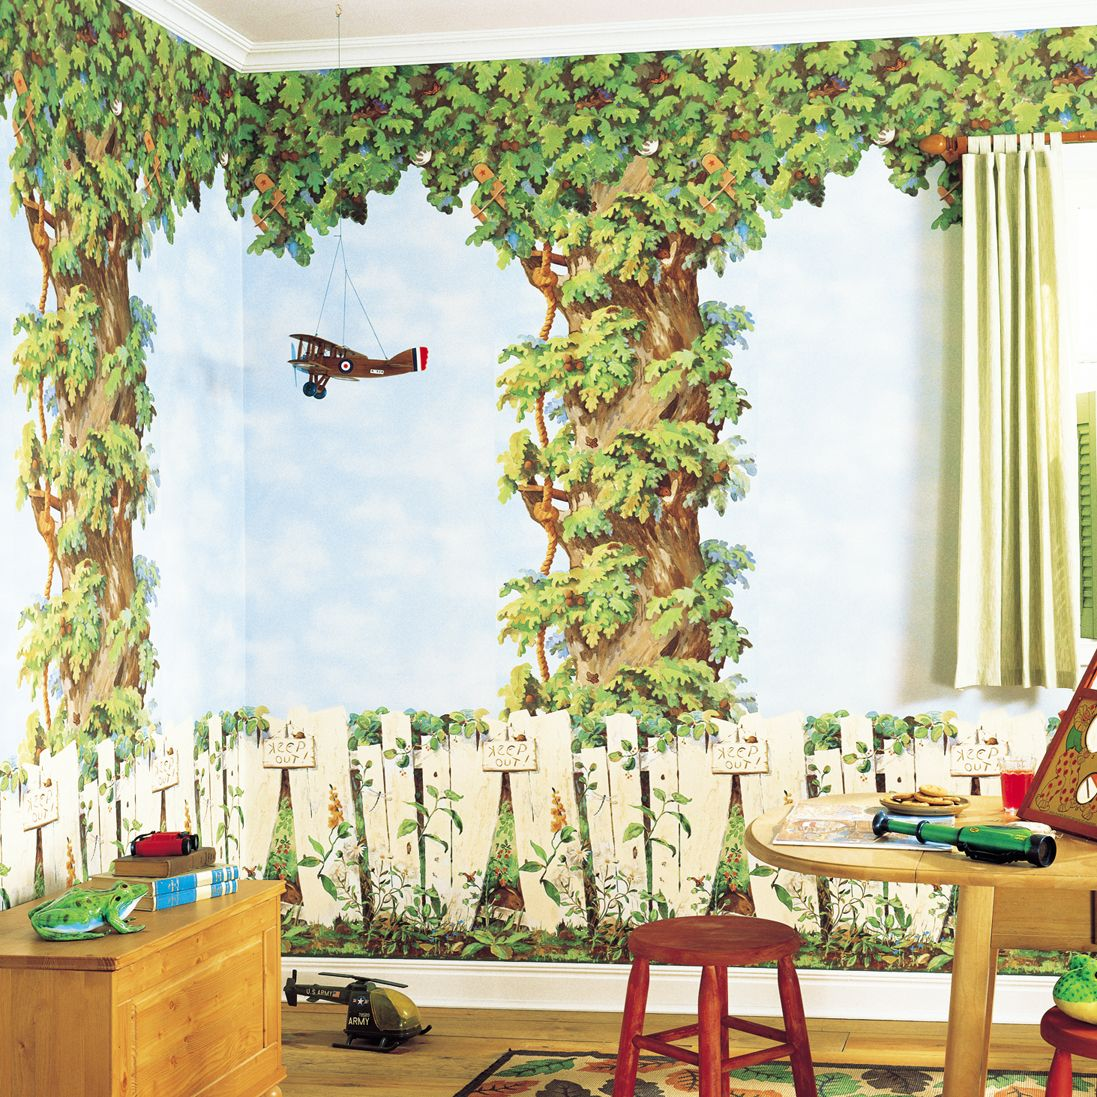 Foster learning and imagination here with Tree House mural http://lelandswallpaper.com. Combine bottom border, top border, tree border and cloud wallpaper.  Borders $29.99 each and wallpaper $29.99 per single roll